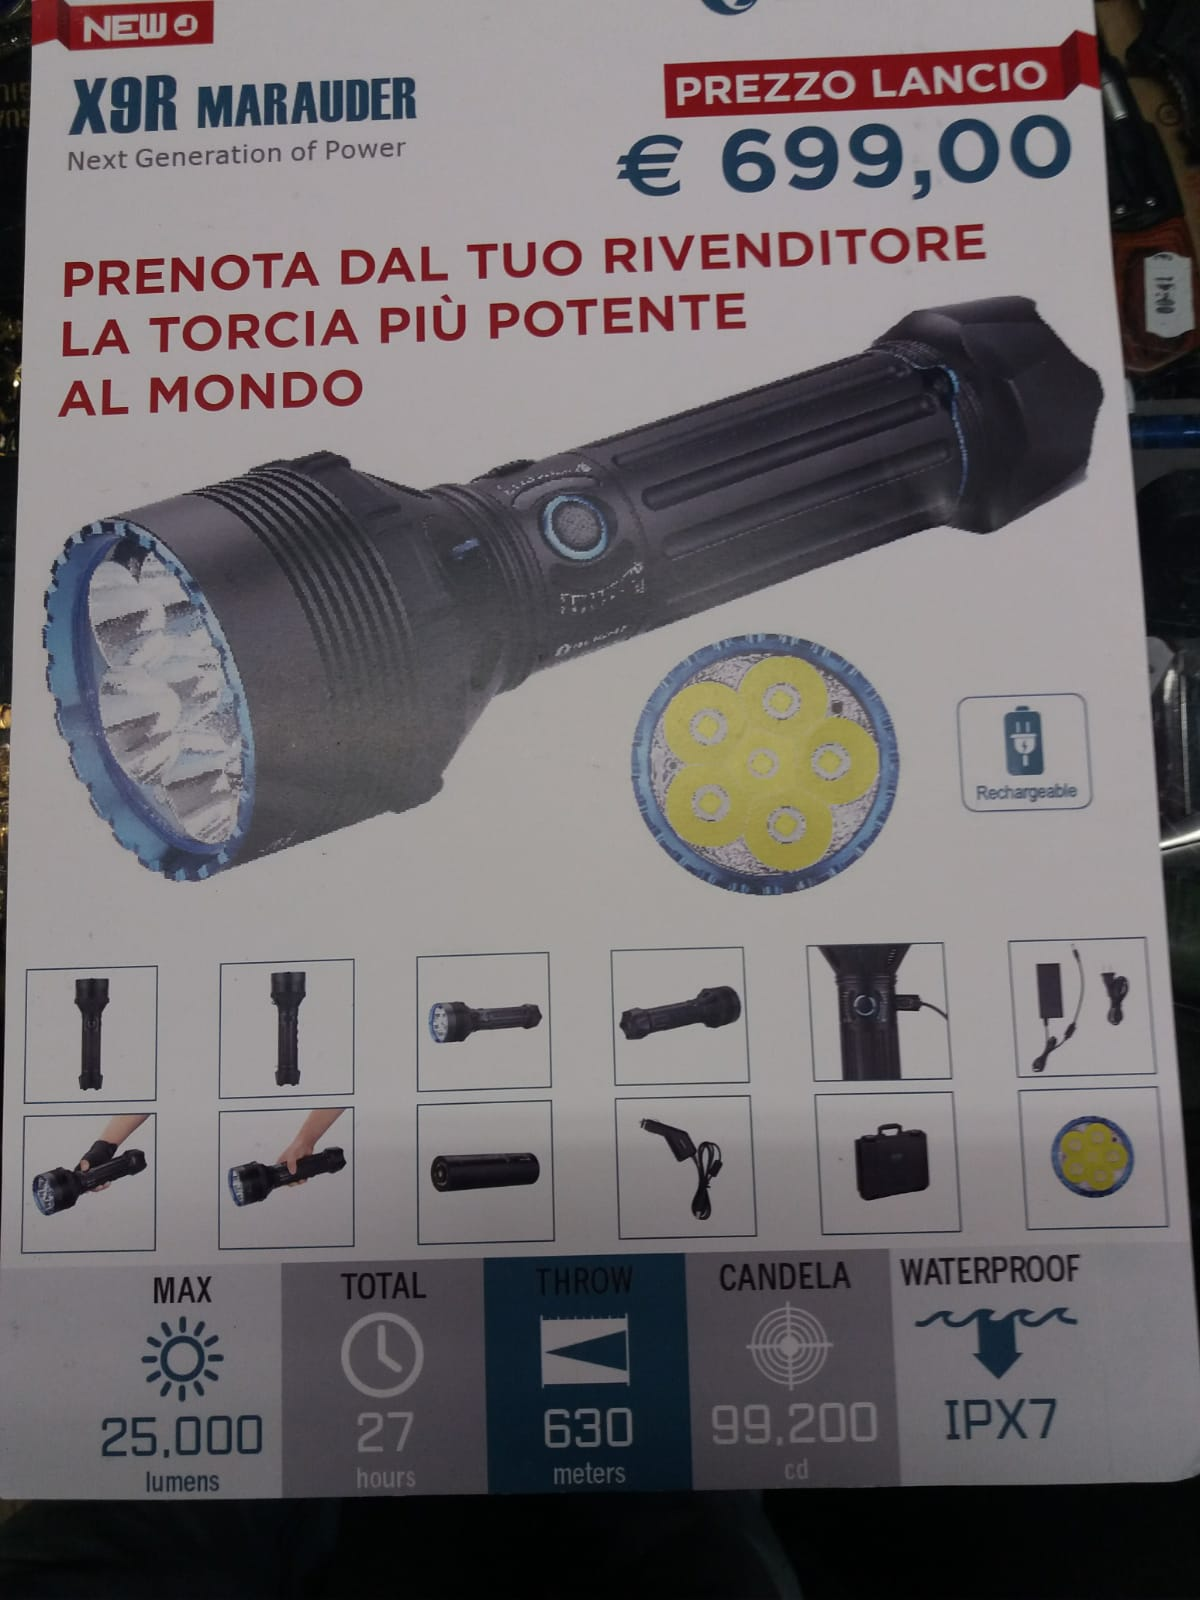 Torcia 25000 luemens Ultra luminosa